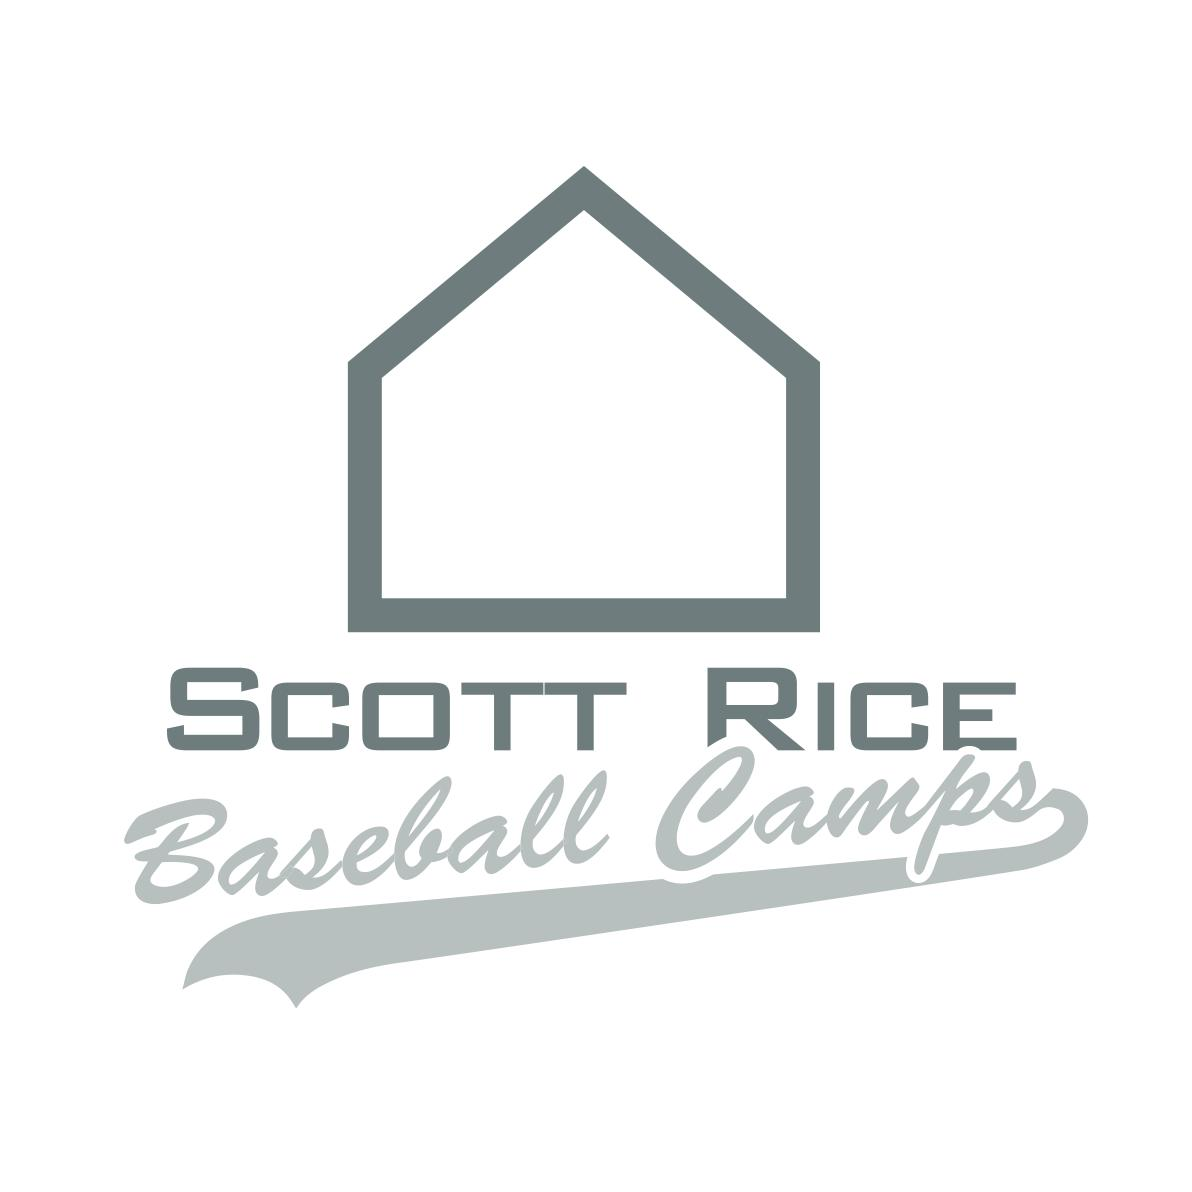 Scott Rice Baseball